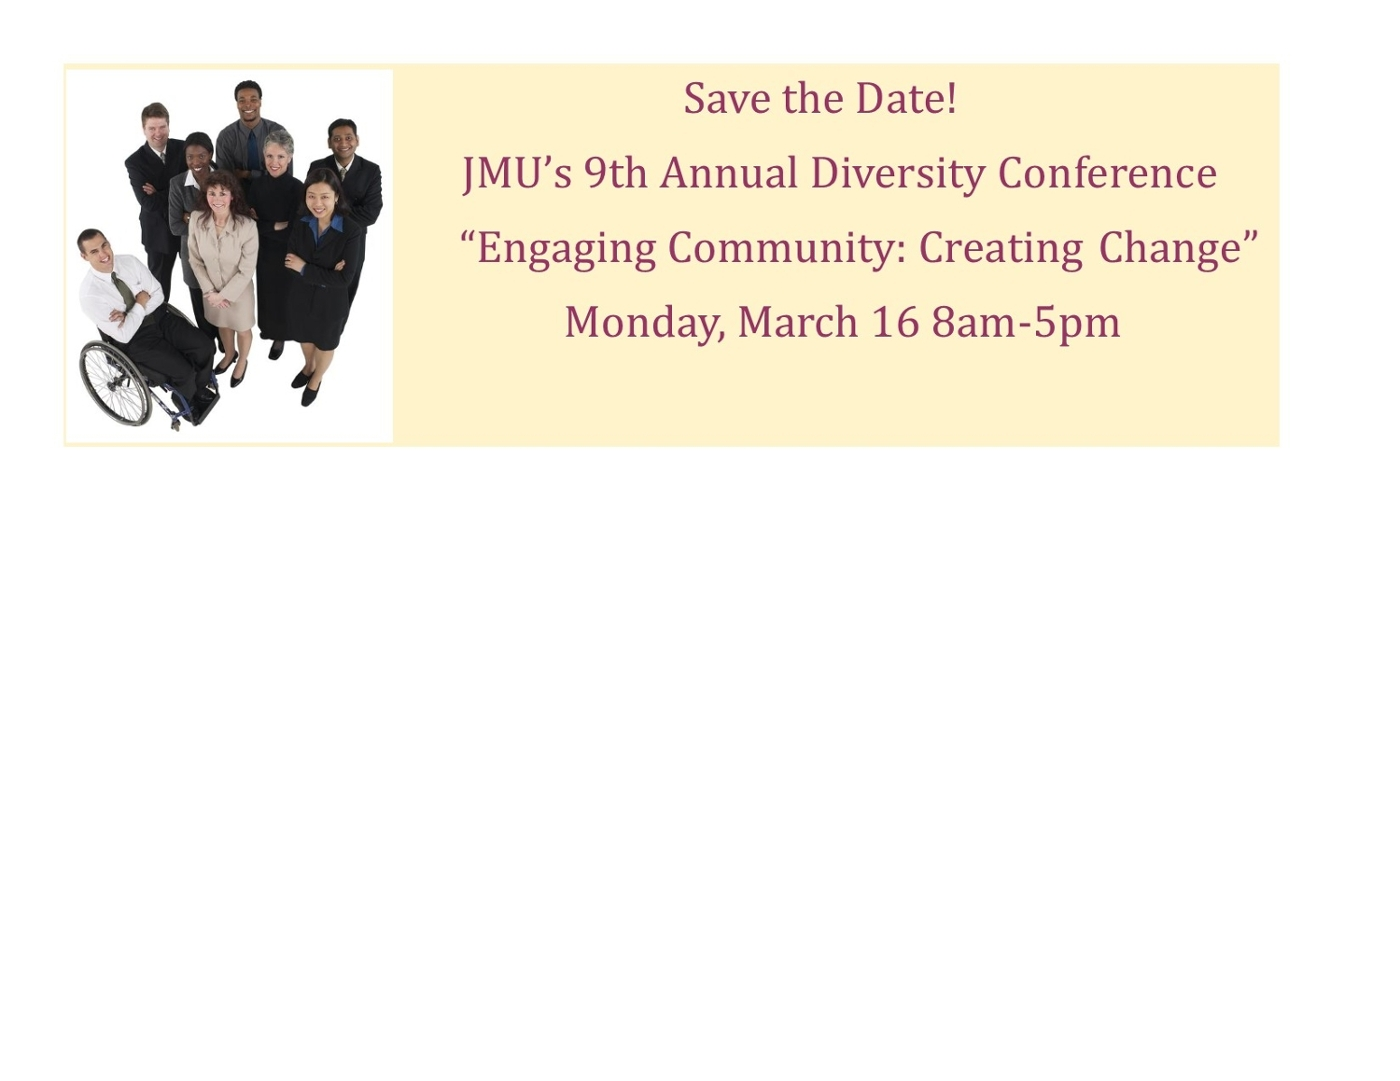 Image: Diversity Conference 2015